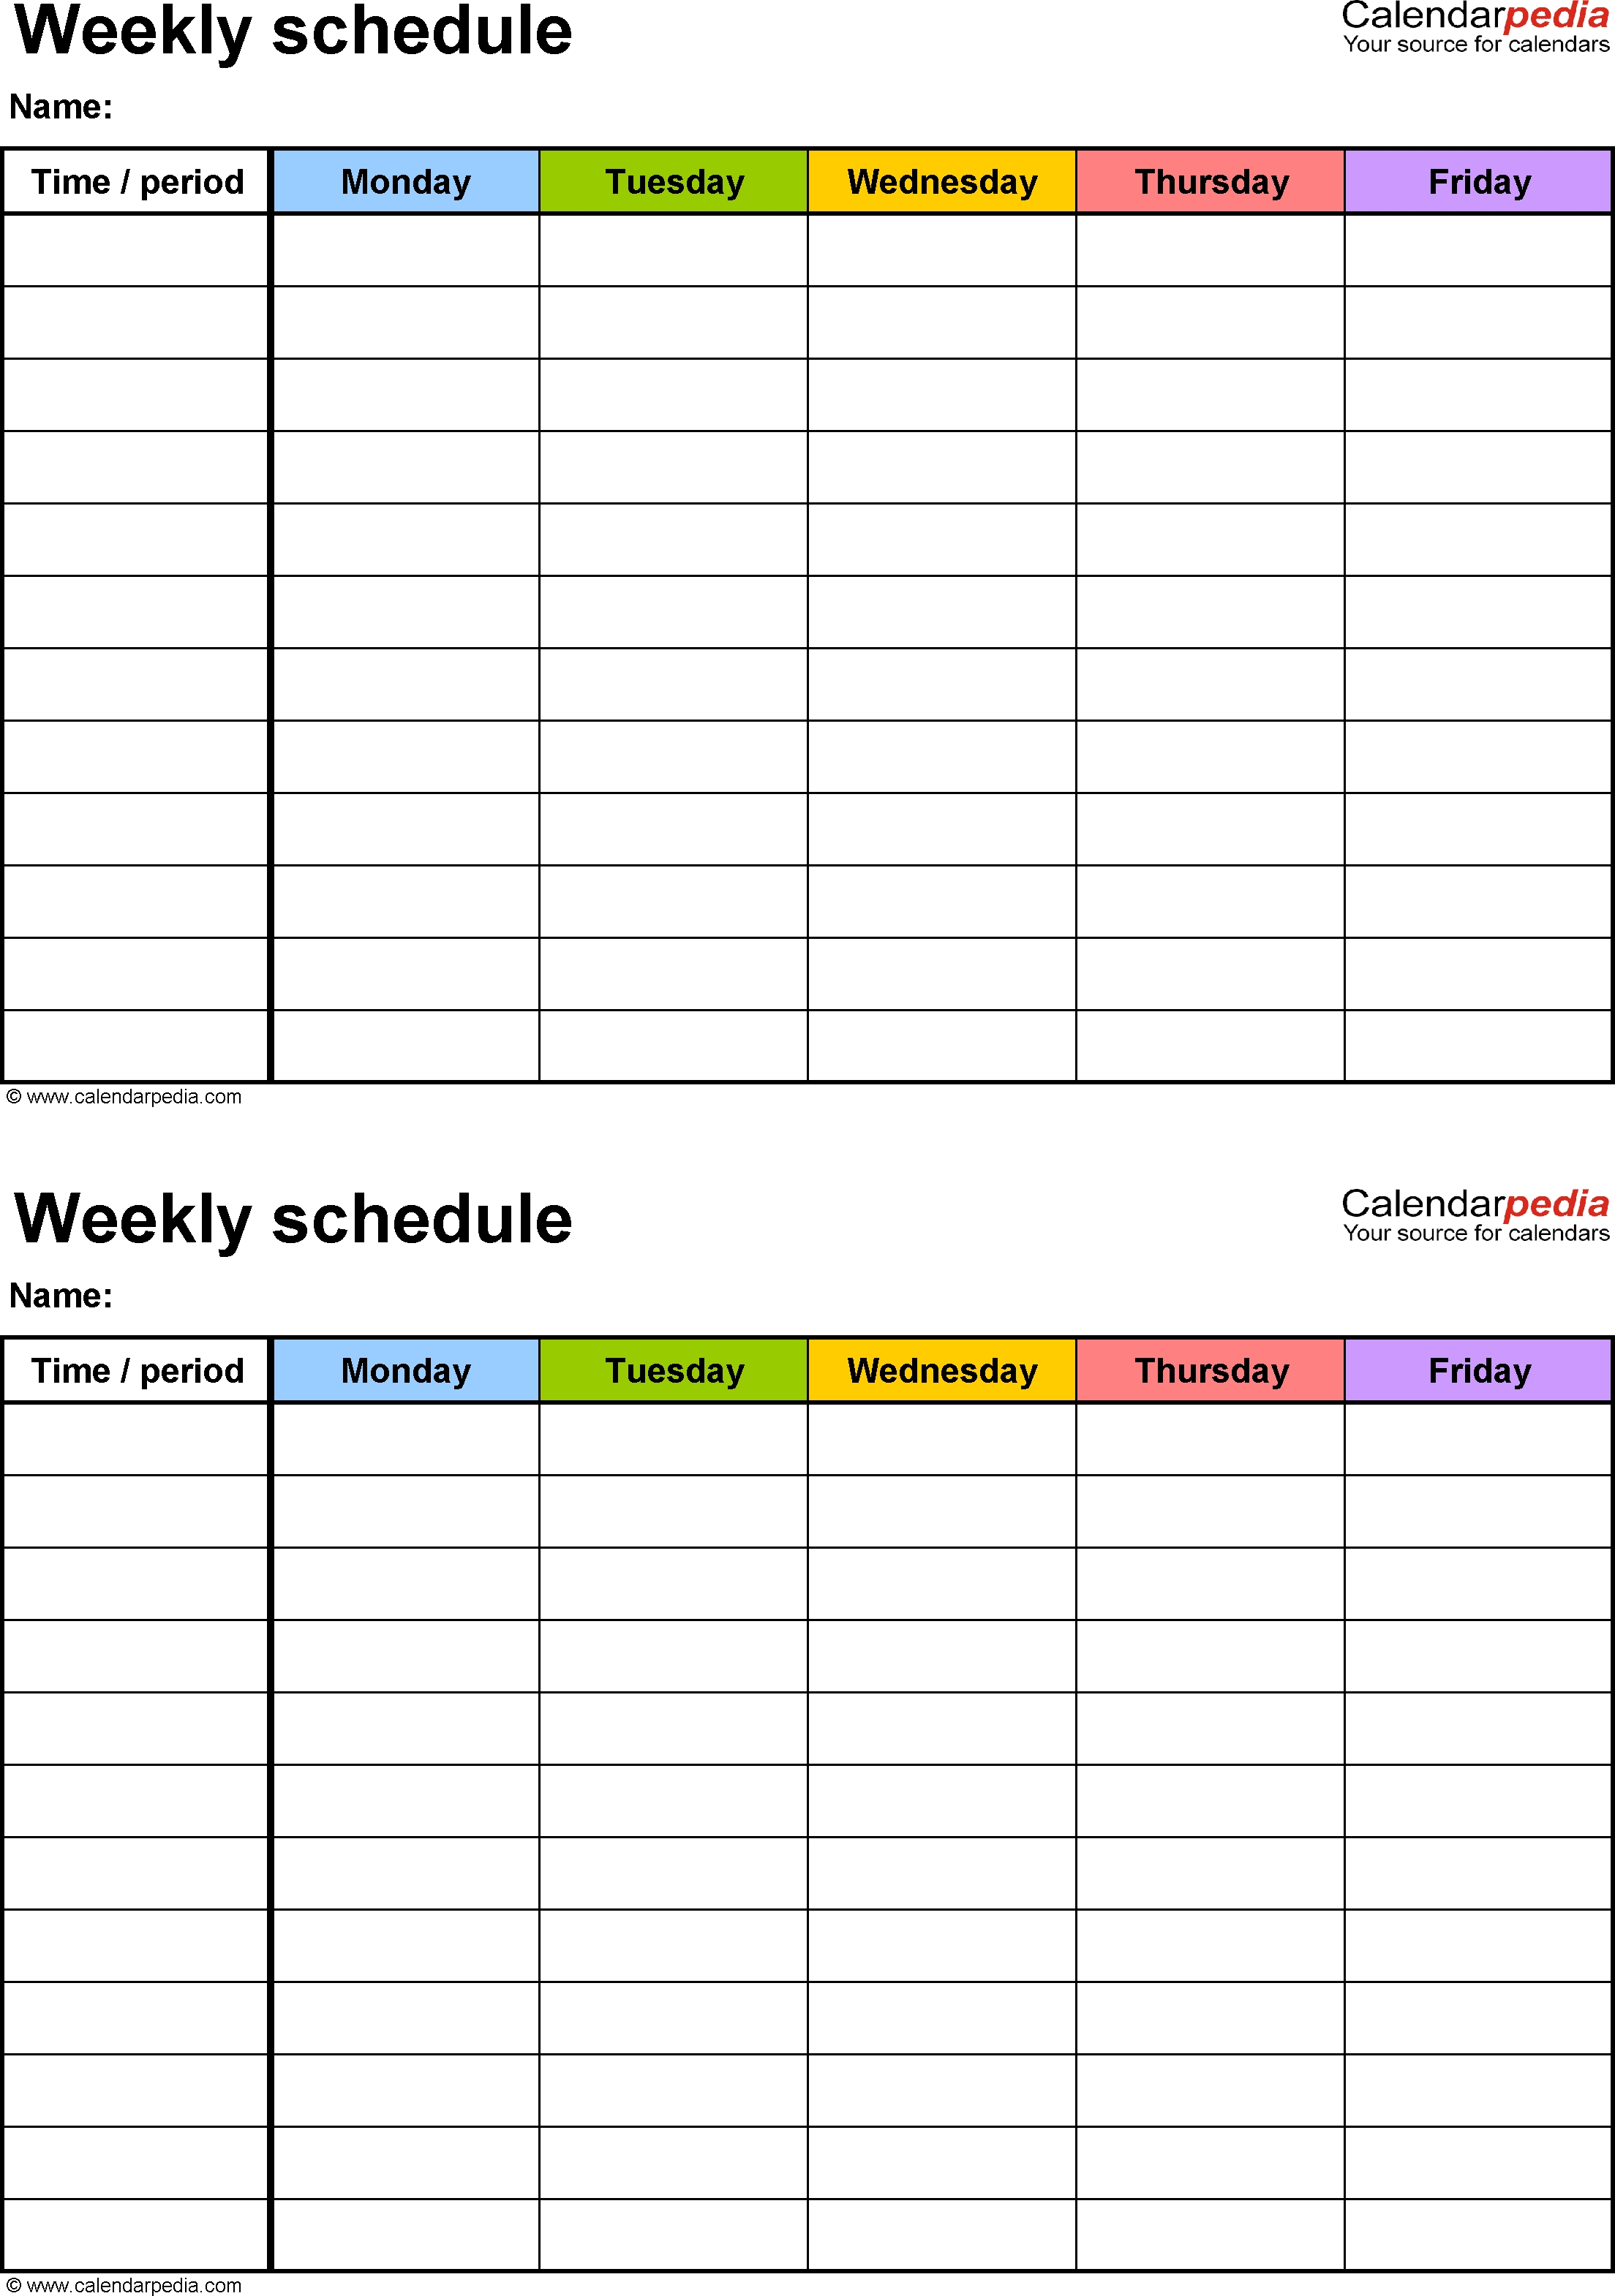 Free Weekly Schedule Templates For Excel - 18 Templates with regard to 7 Day Time Weekly Planner